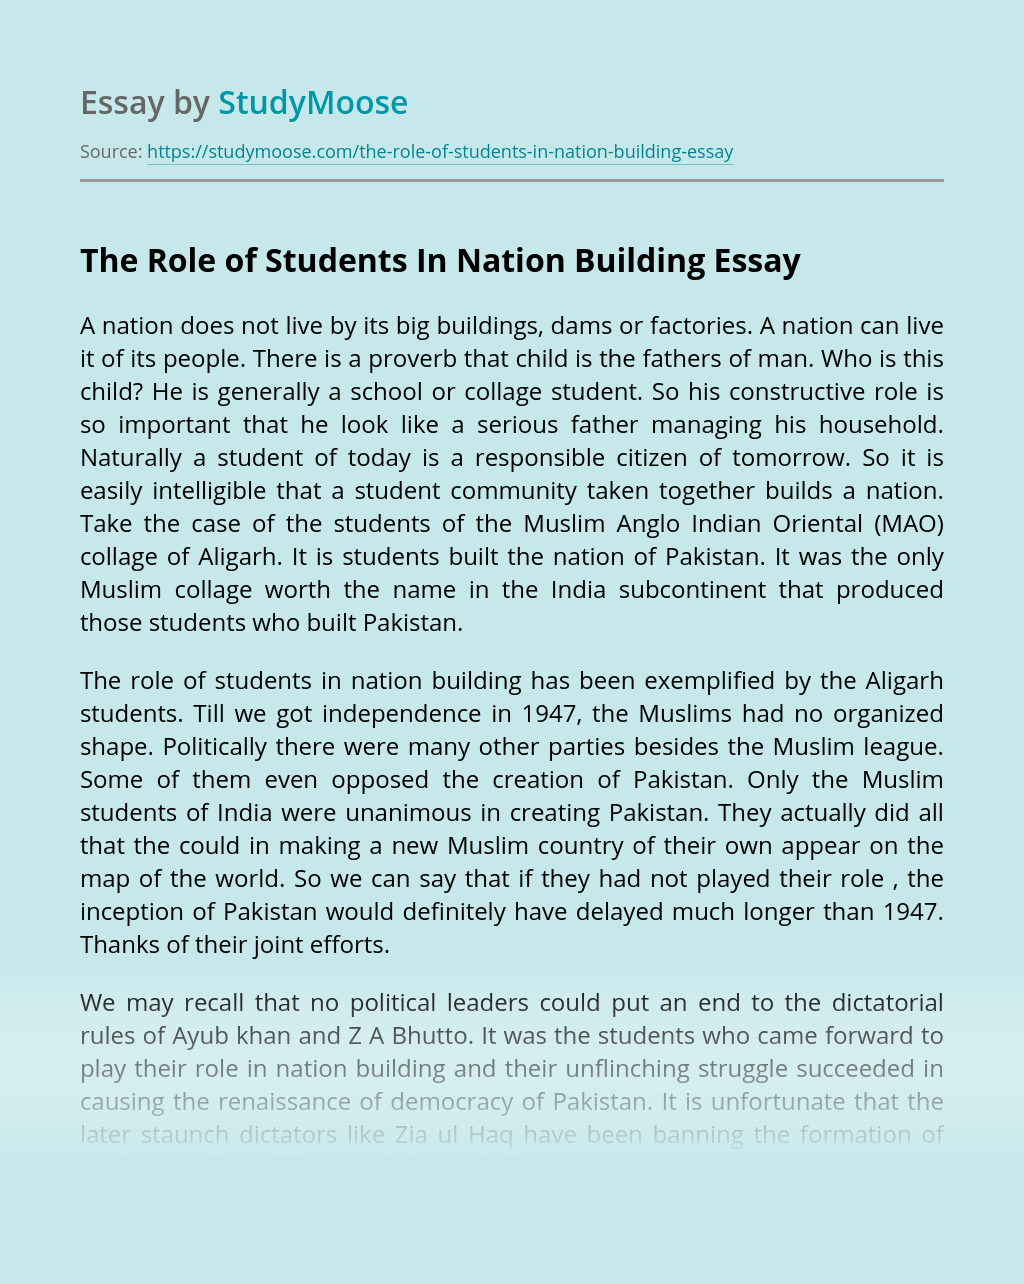 The Role of Students In Nation Building